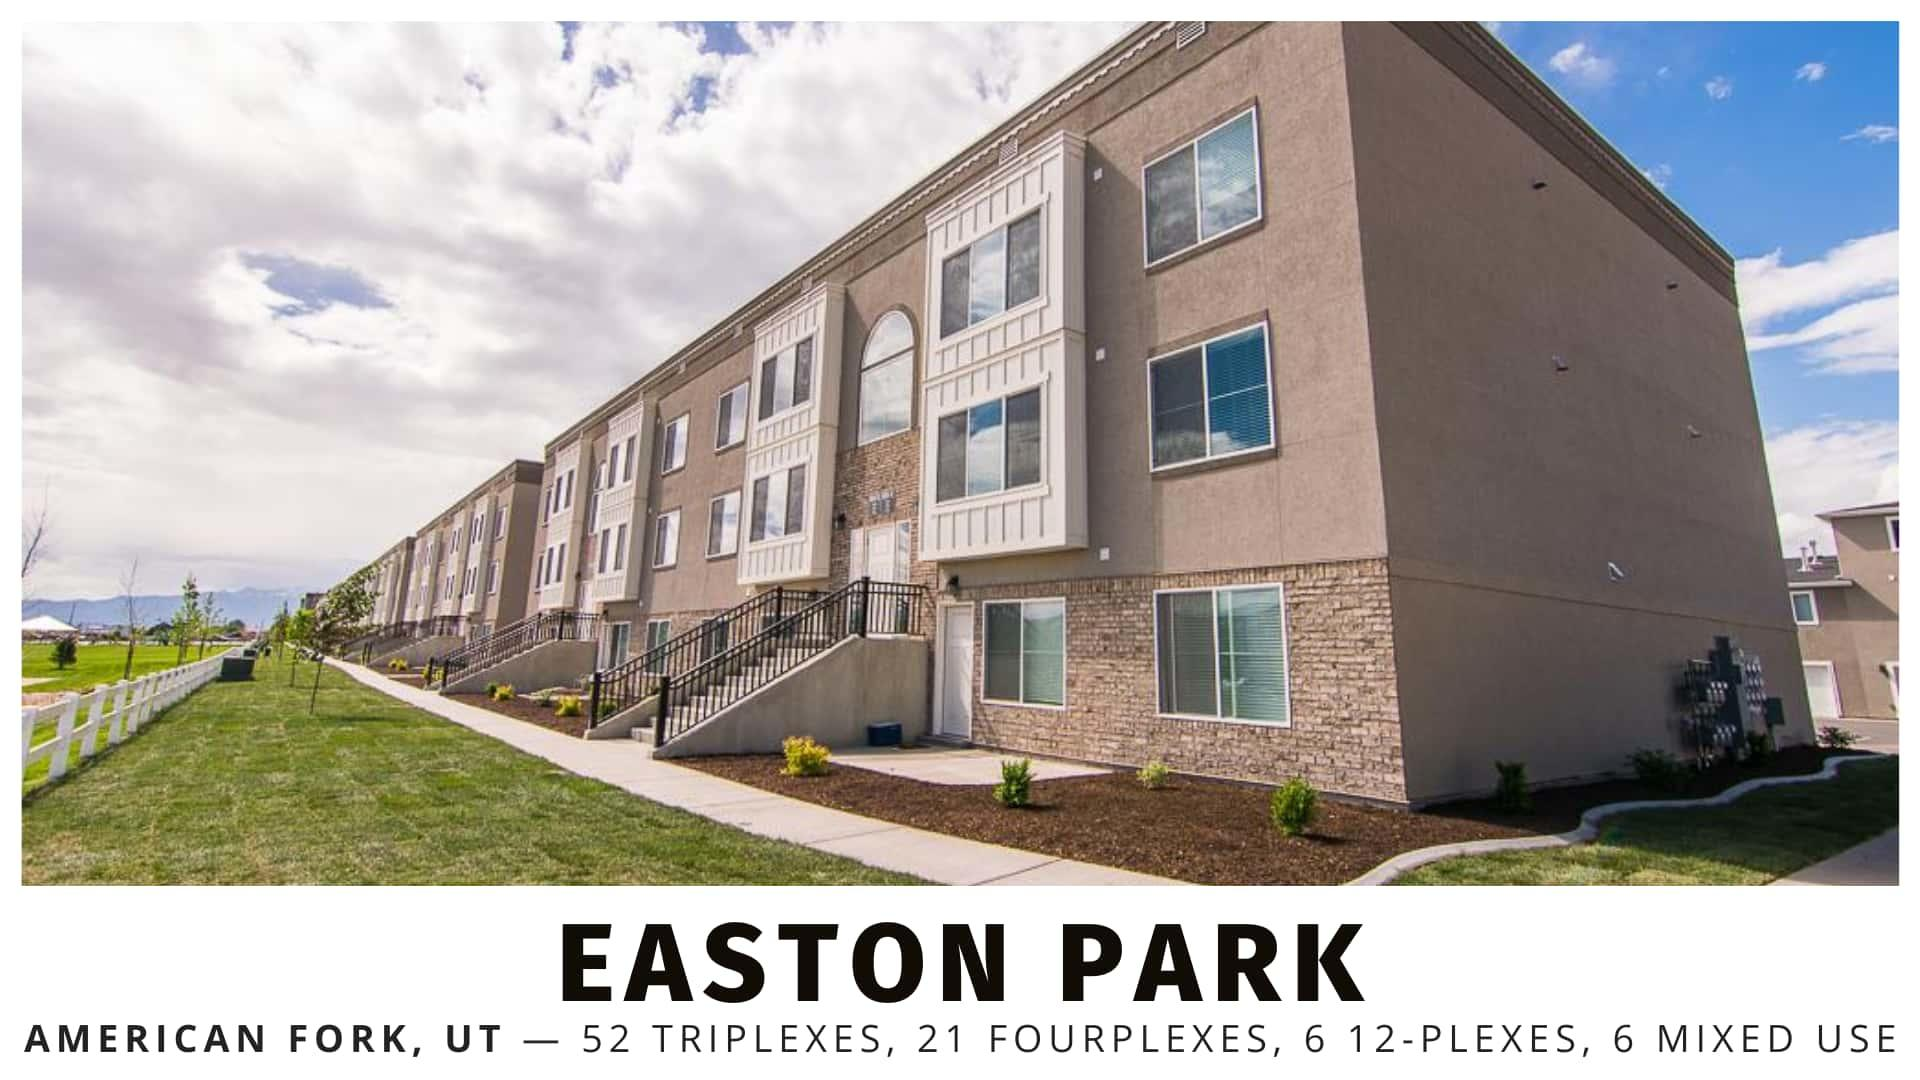 Easton Park multifamily in American Fork, Utah